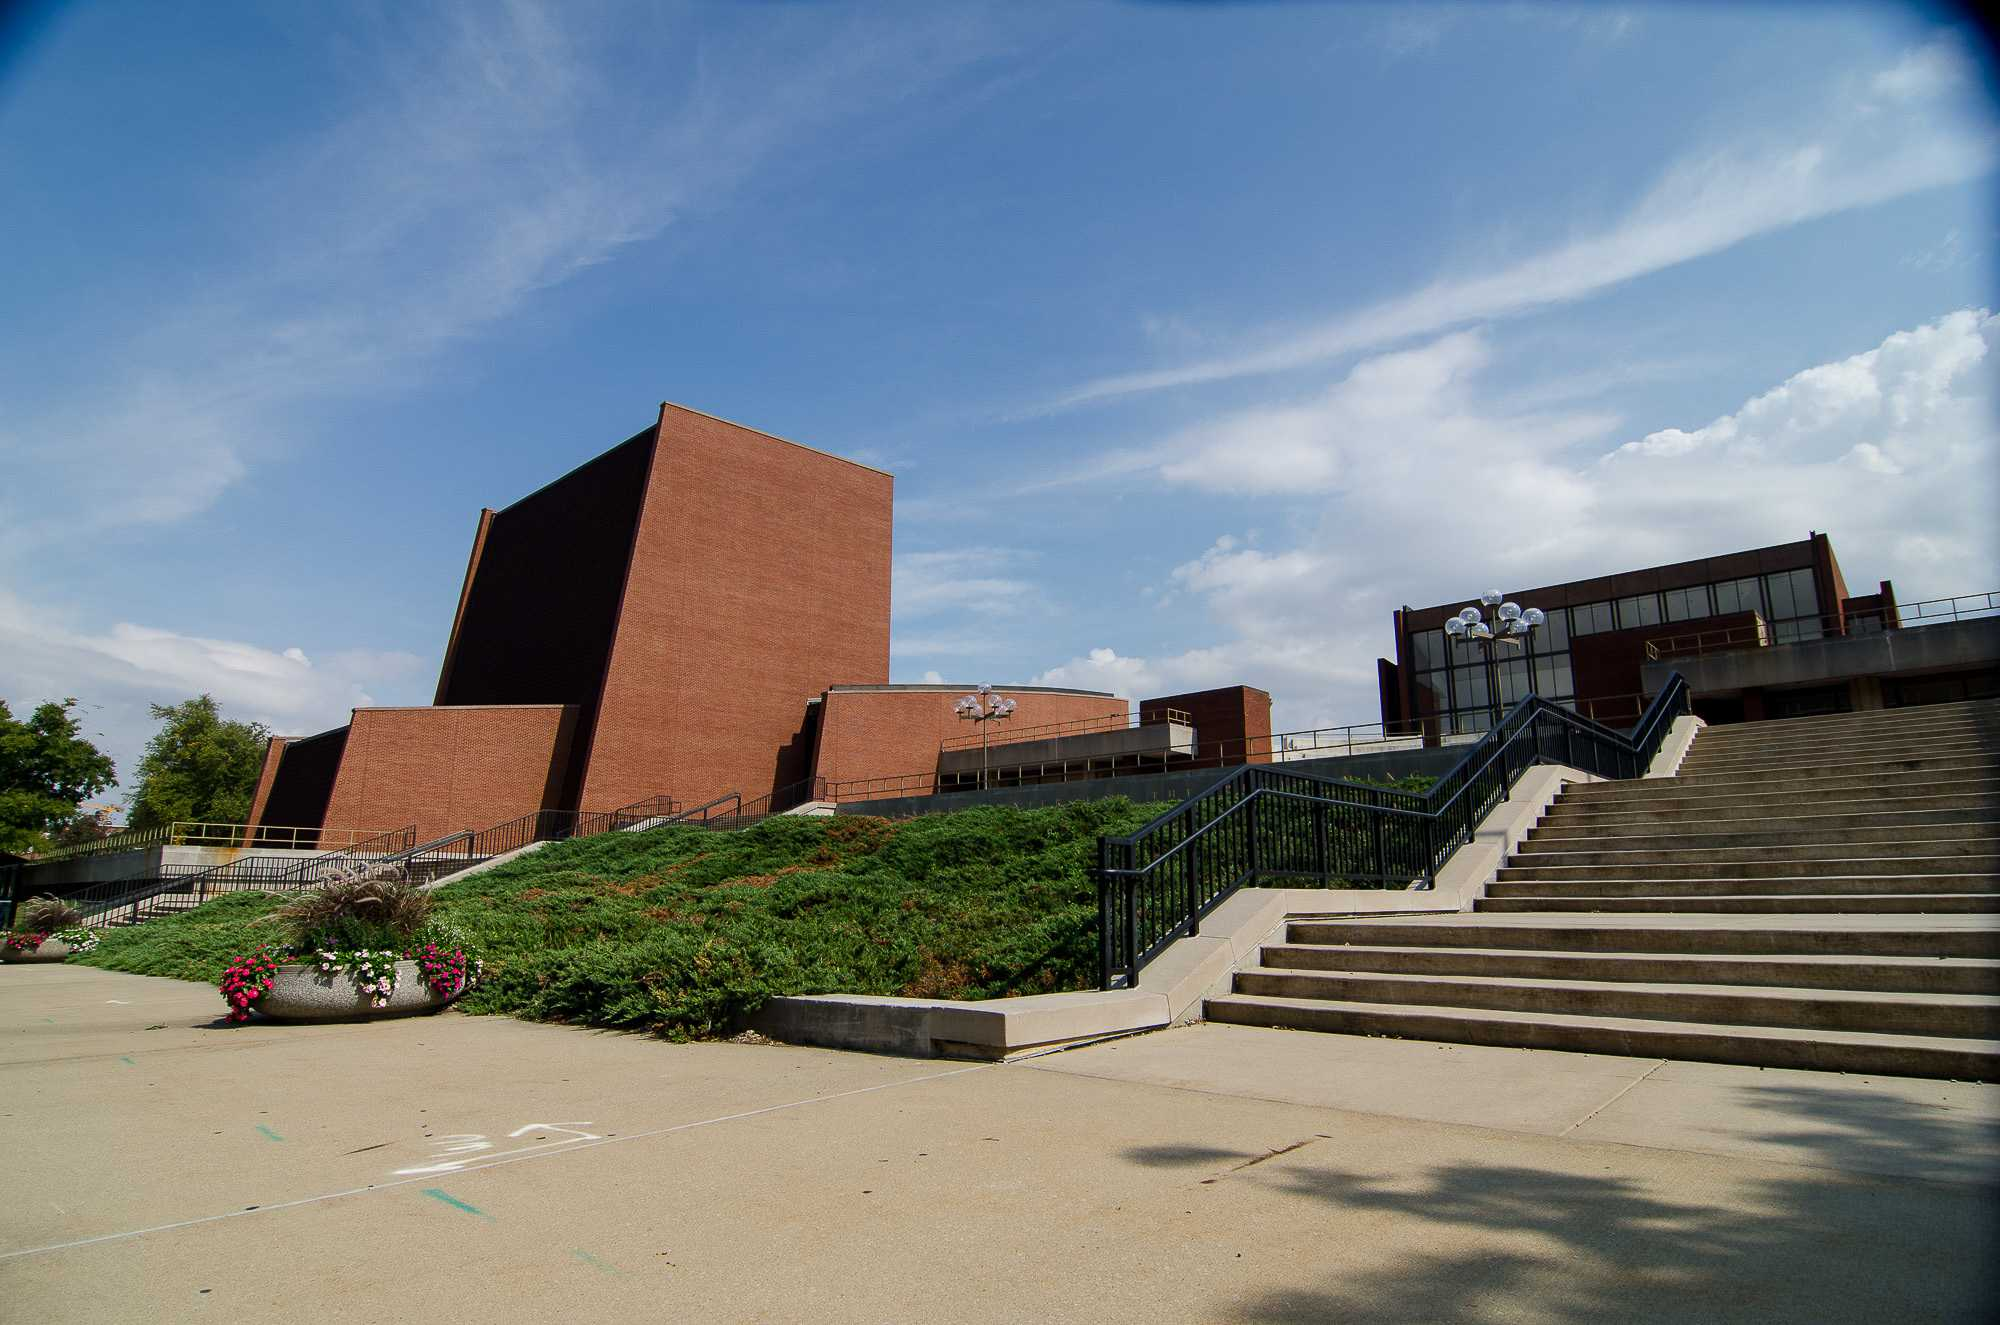 The Goodwin street entrance of the Krannert Center.